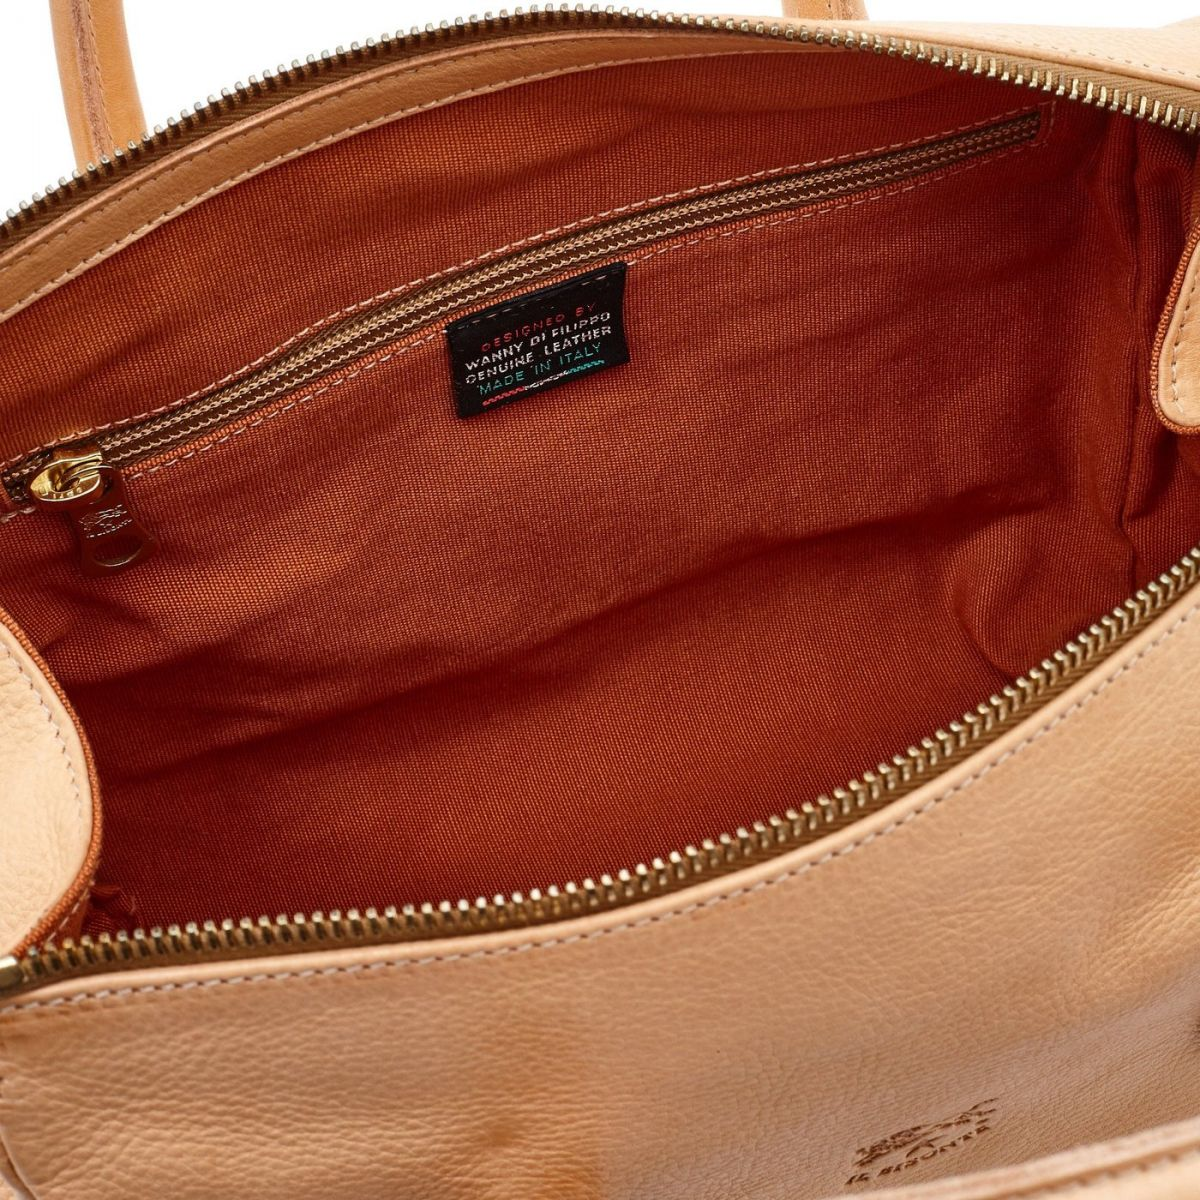 Women's Handbag Pratolino in Cowhide Double Leather BTH050 color Natural | Details